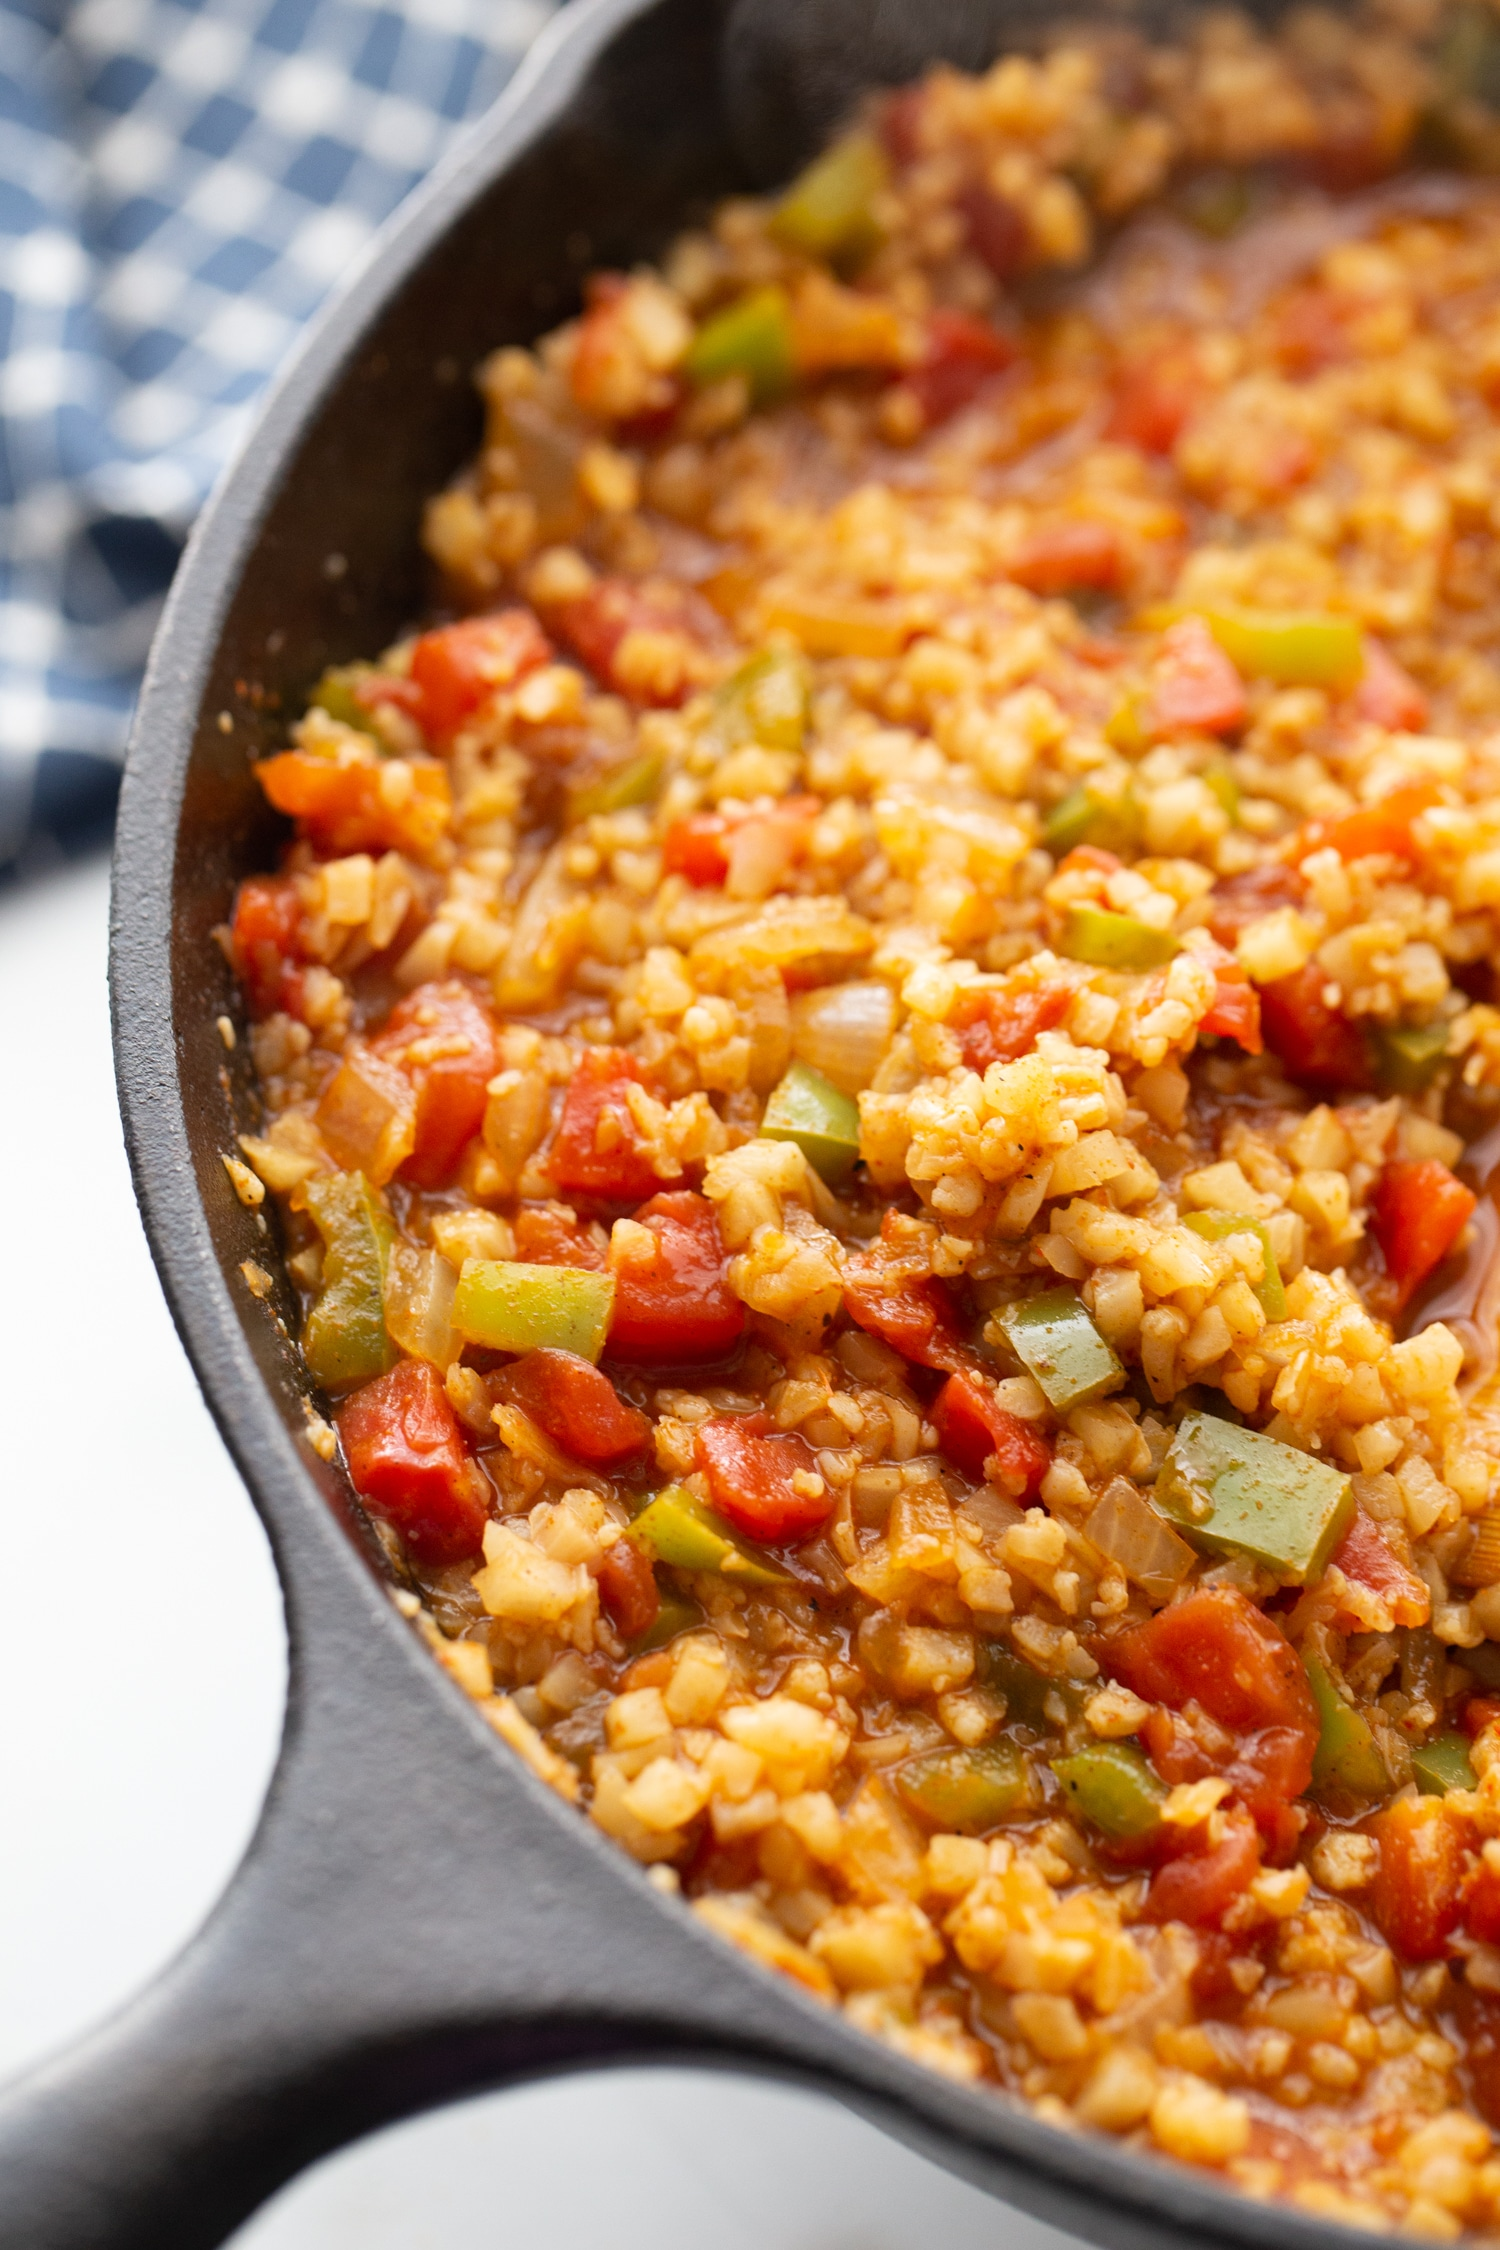 Taco seasoning with riced cauliflower in a skillet